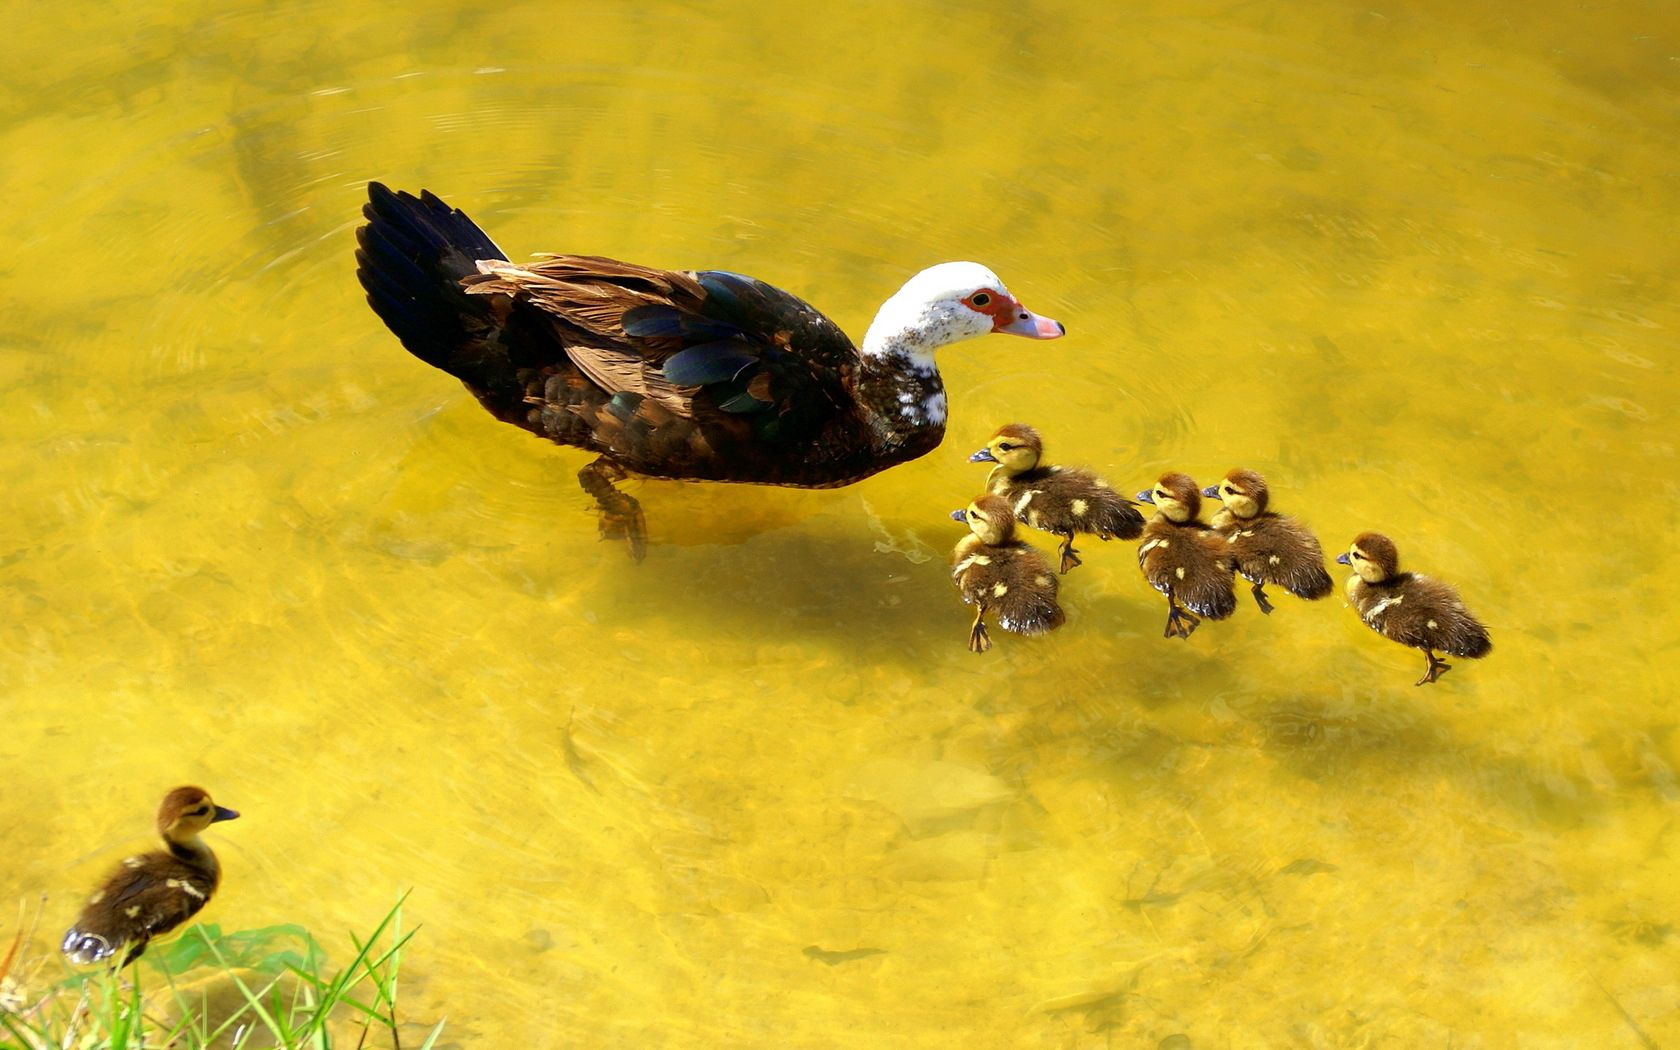 148666 download wallpaper Animals, Duck, Lake, Nature, To Swim, Swim, Ducklings, Care screensavers and pictures for free